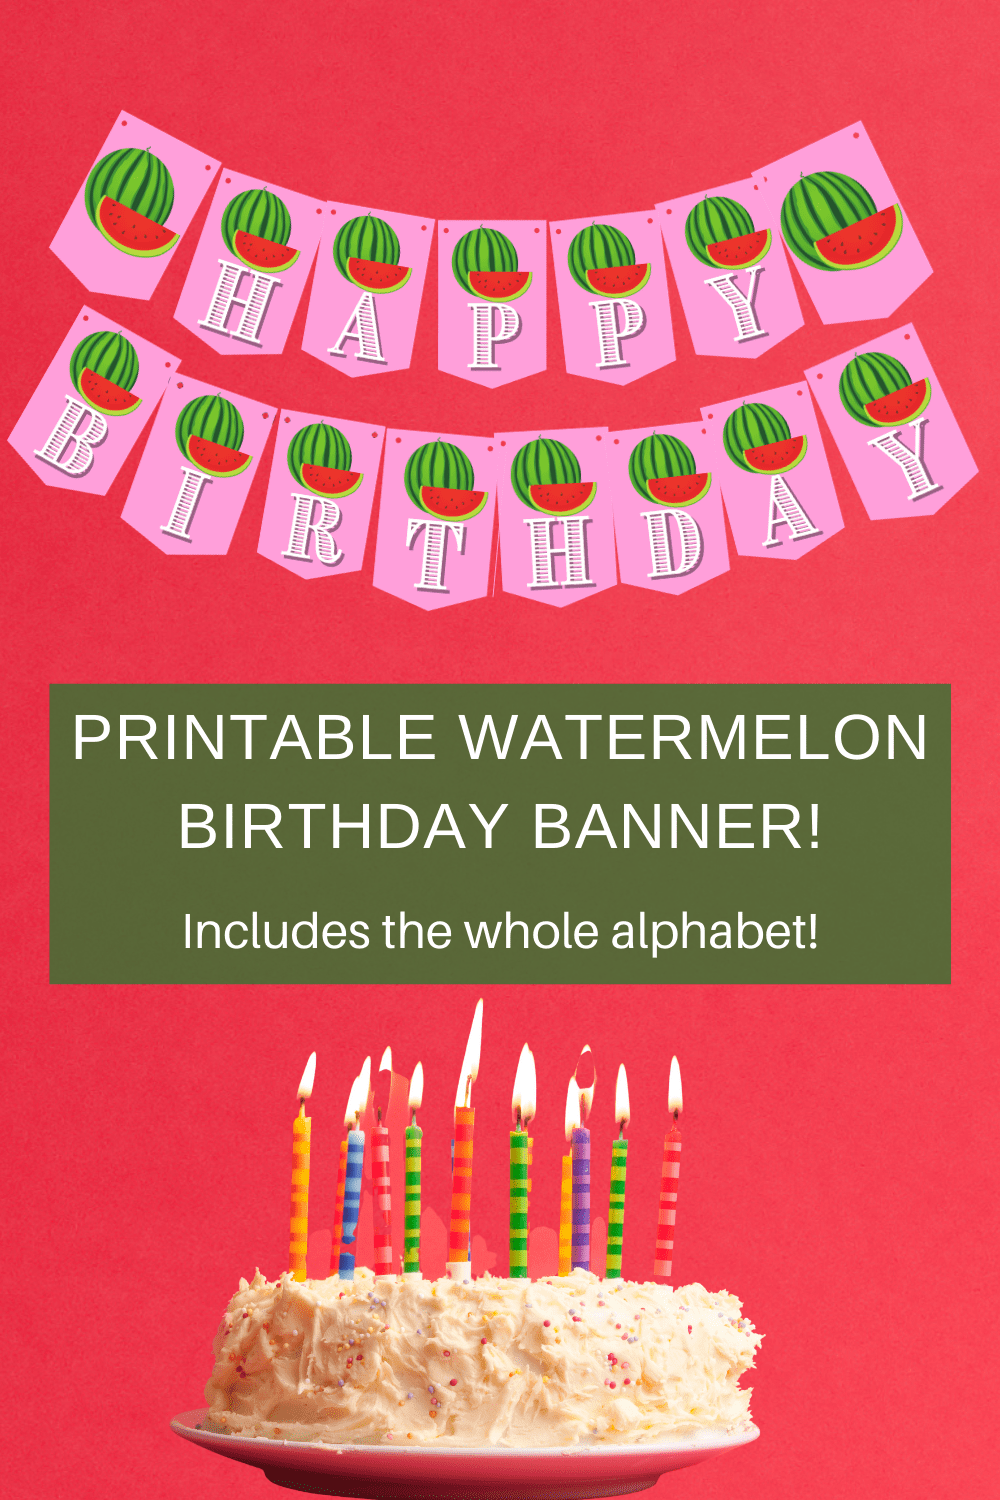 watermelon happy birthday banner